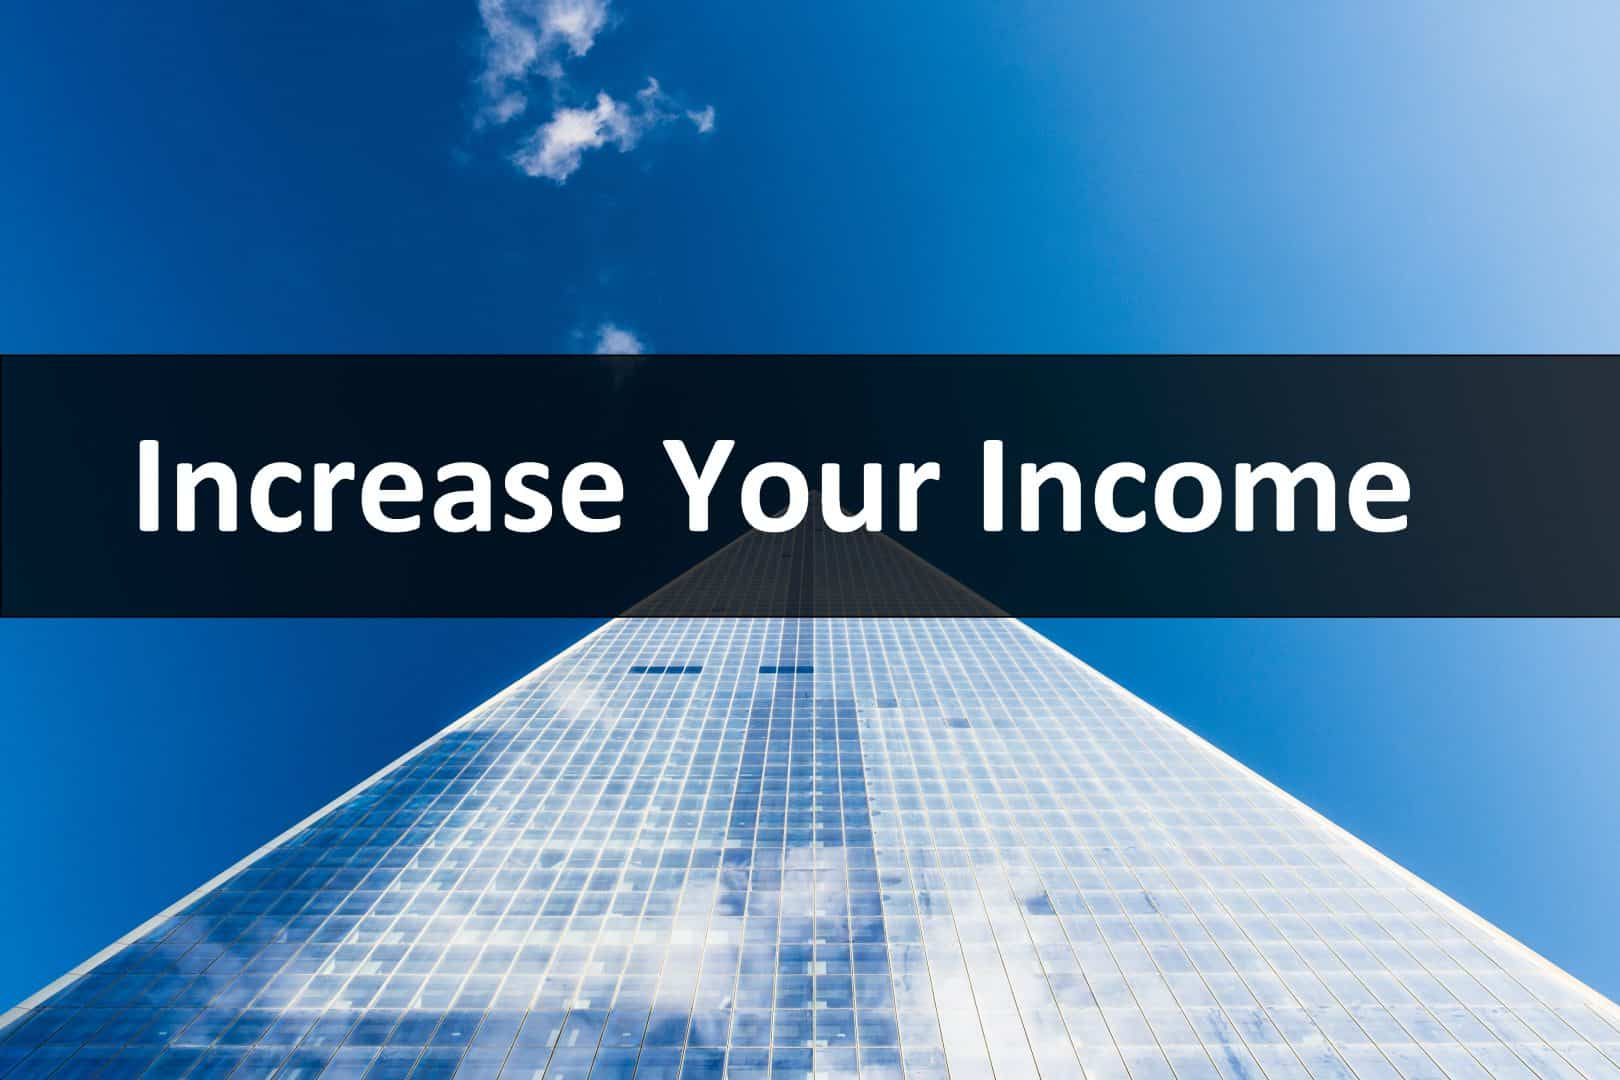 Increase You Income